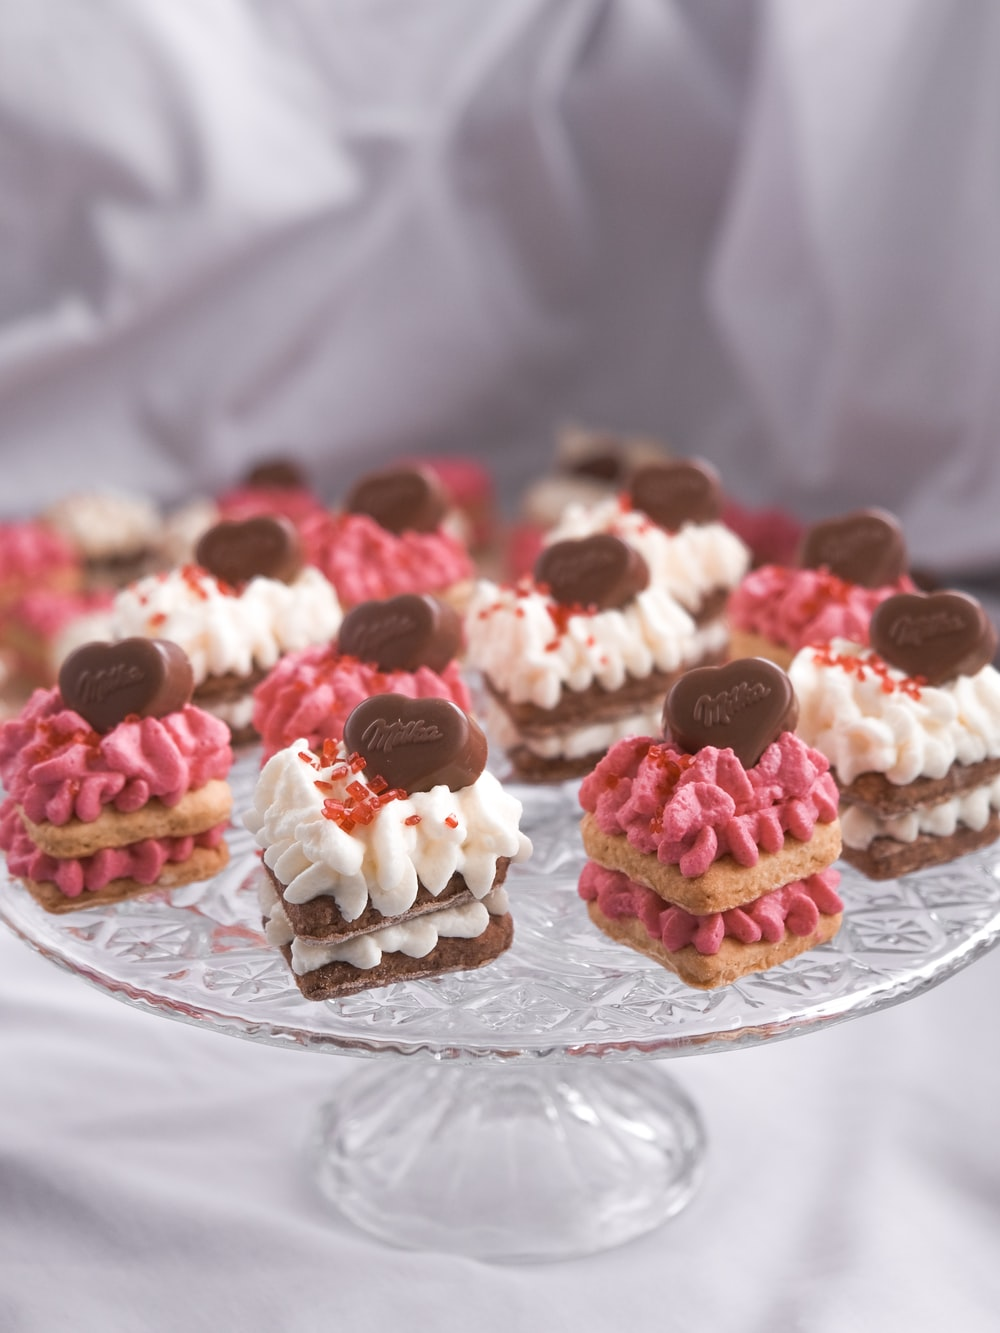 cupcakes on clear glass round plate